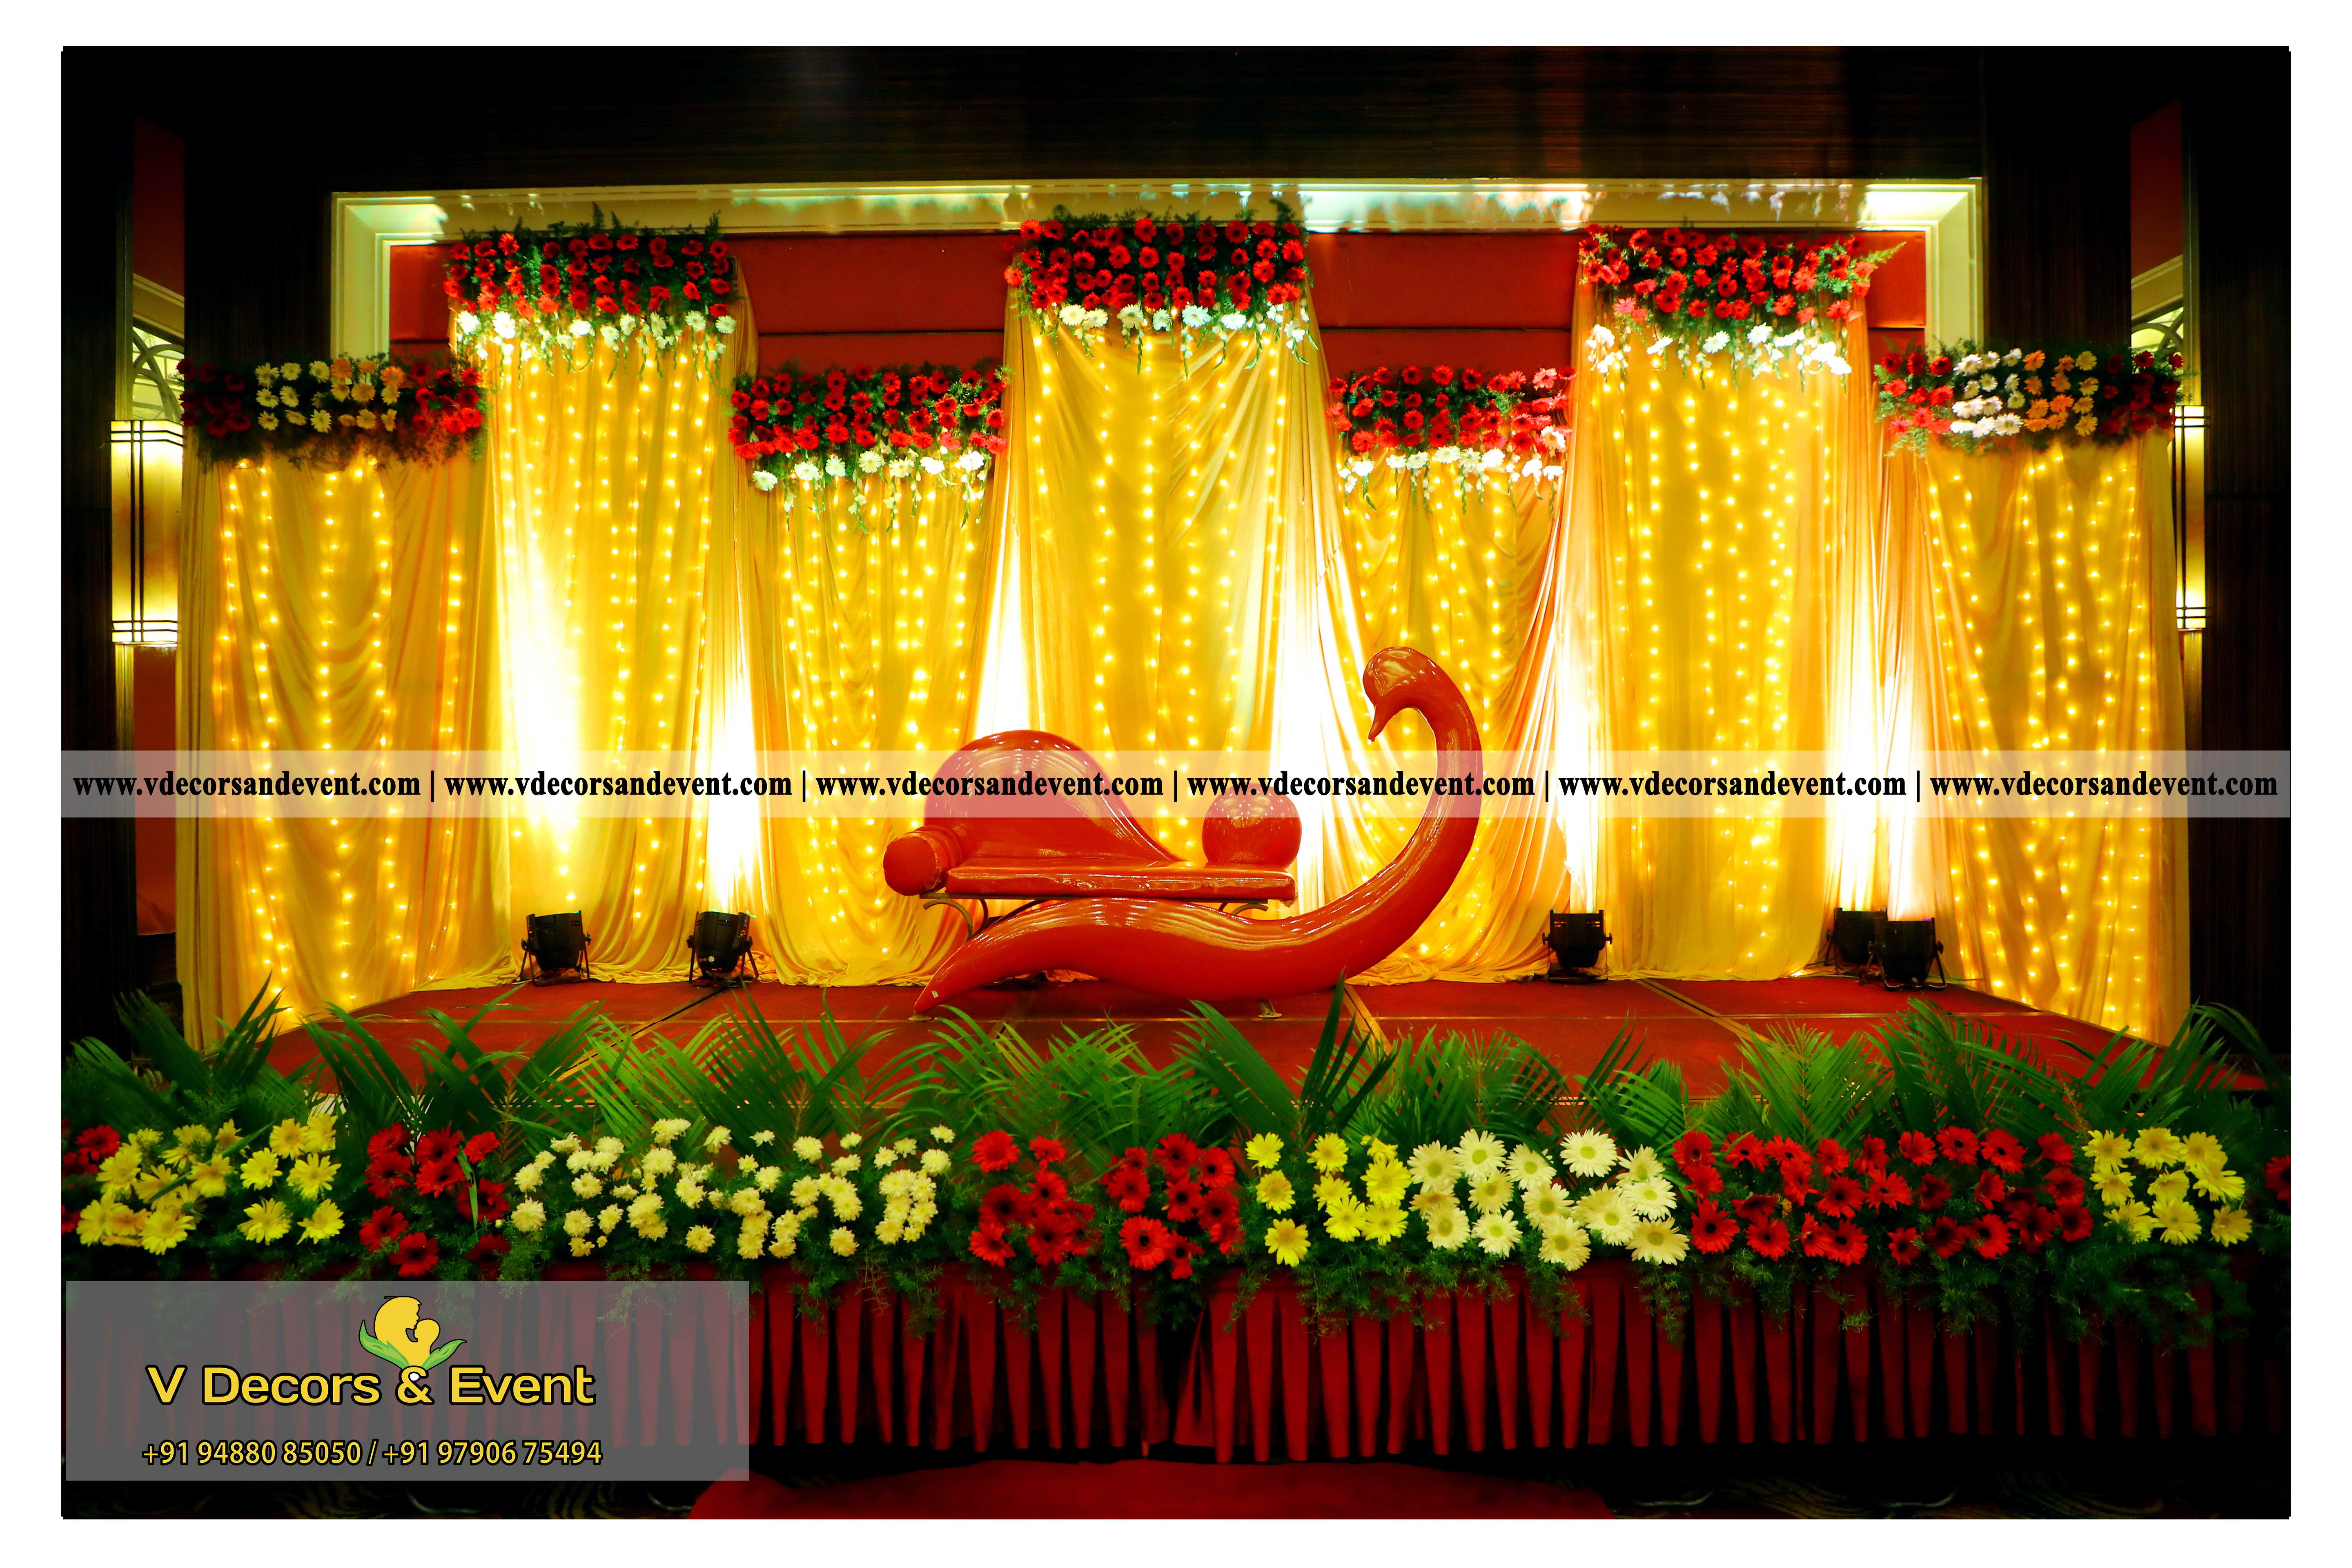 Latest event decoration grand serena hotel pondicherrylatest event wedding reception decoration organize at grand serena hotel pondicherry junglespirit Image collections